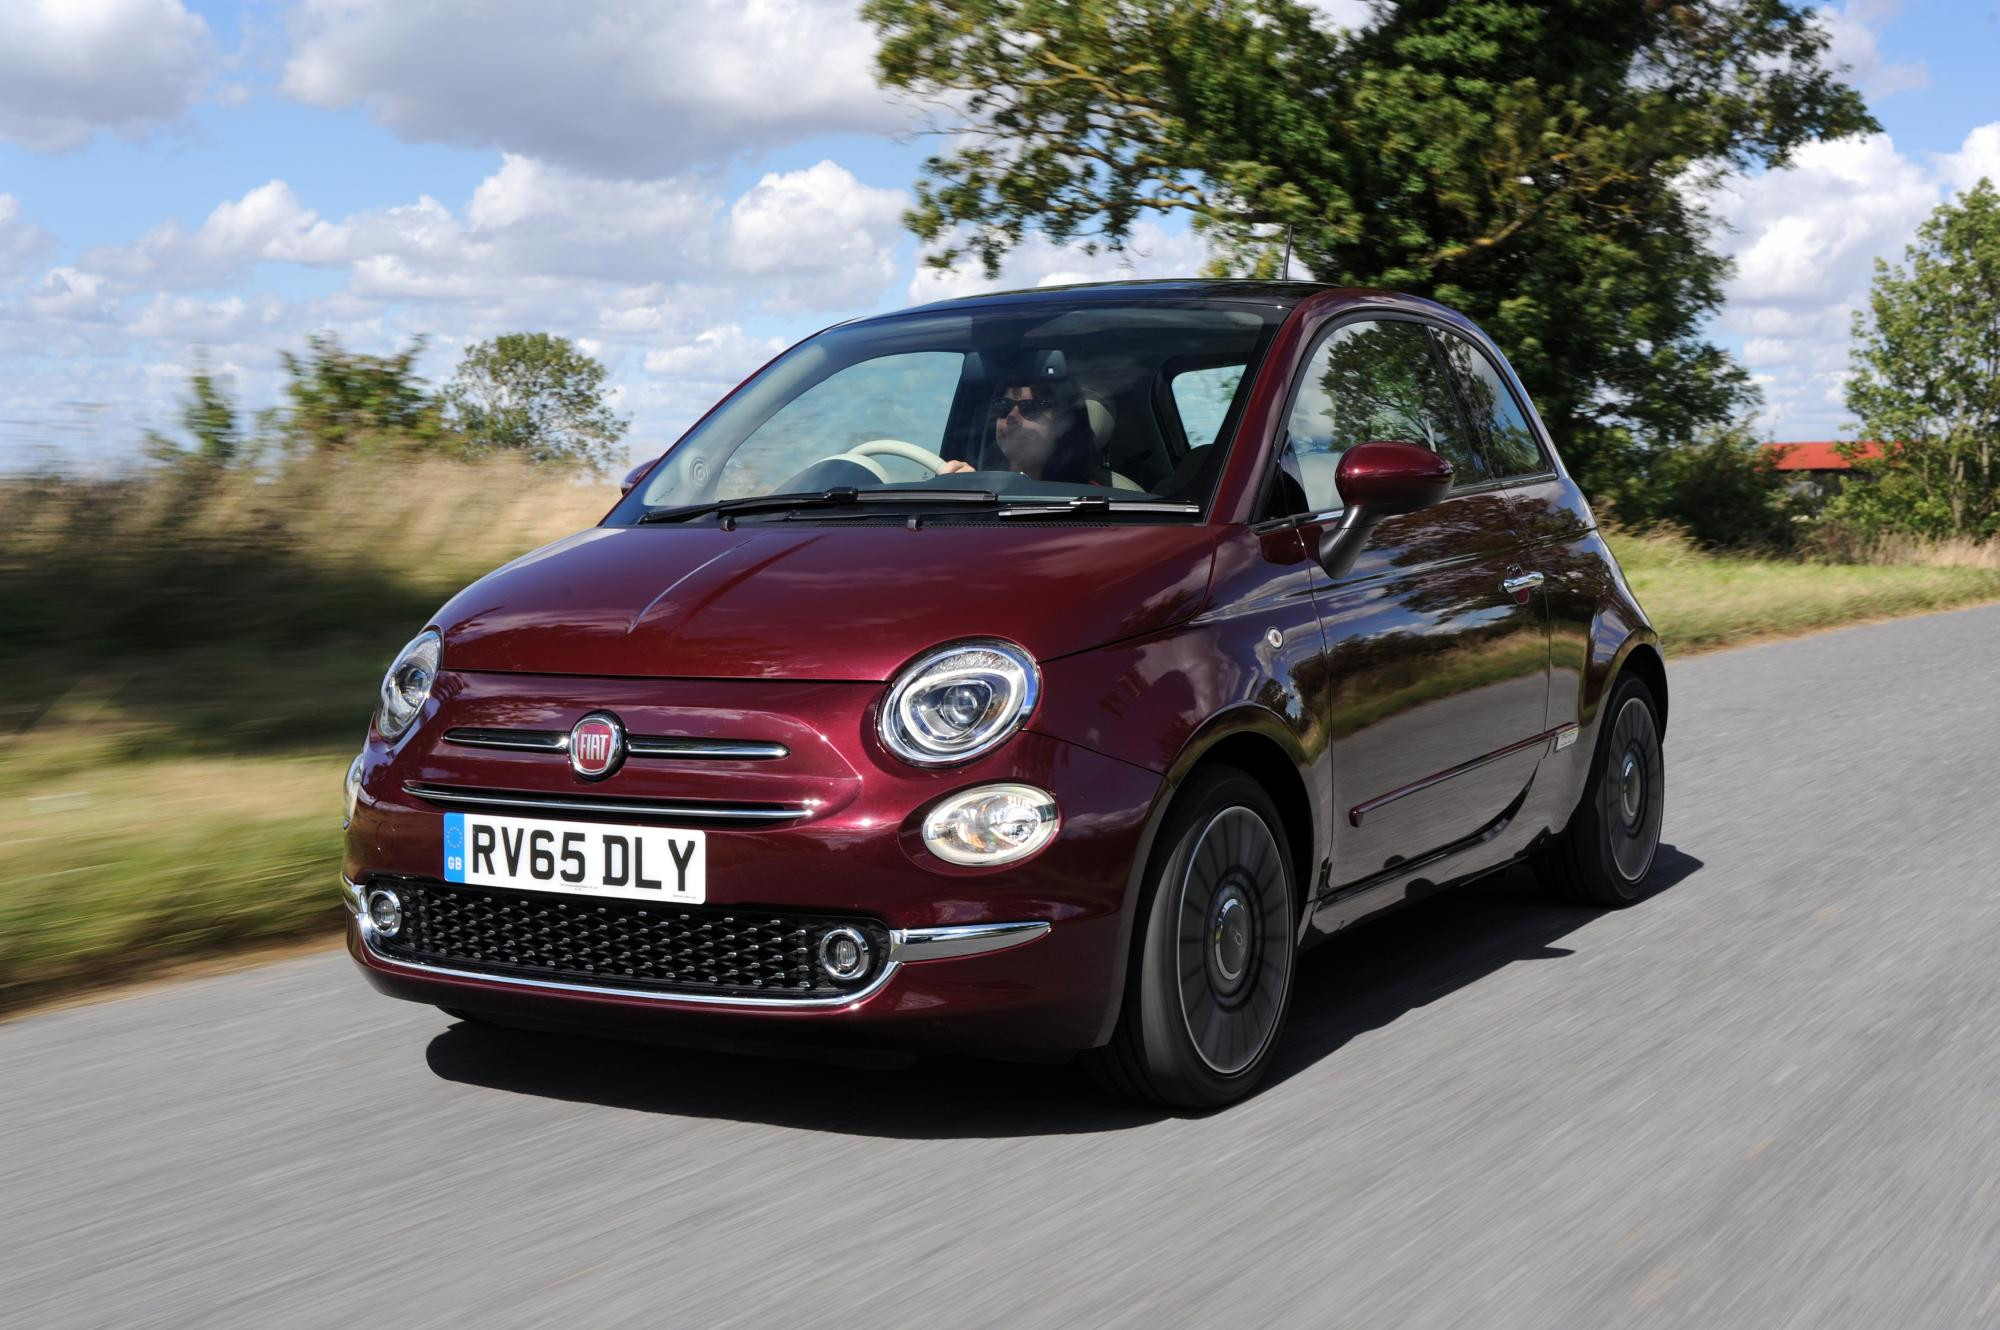 Close up of a burgundy coloured Fiat 500 driving towards you down a country lane